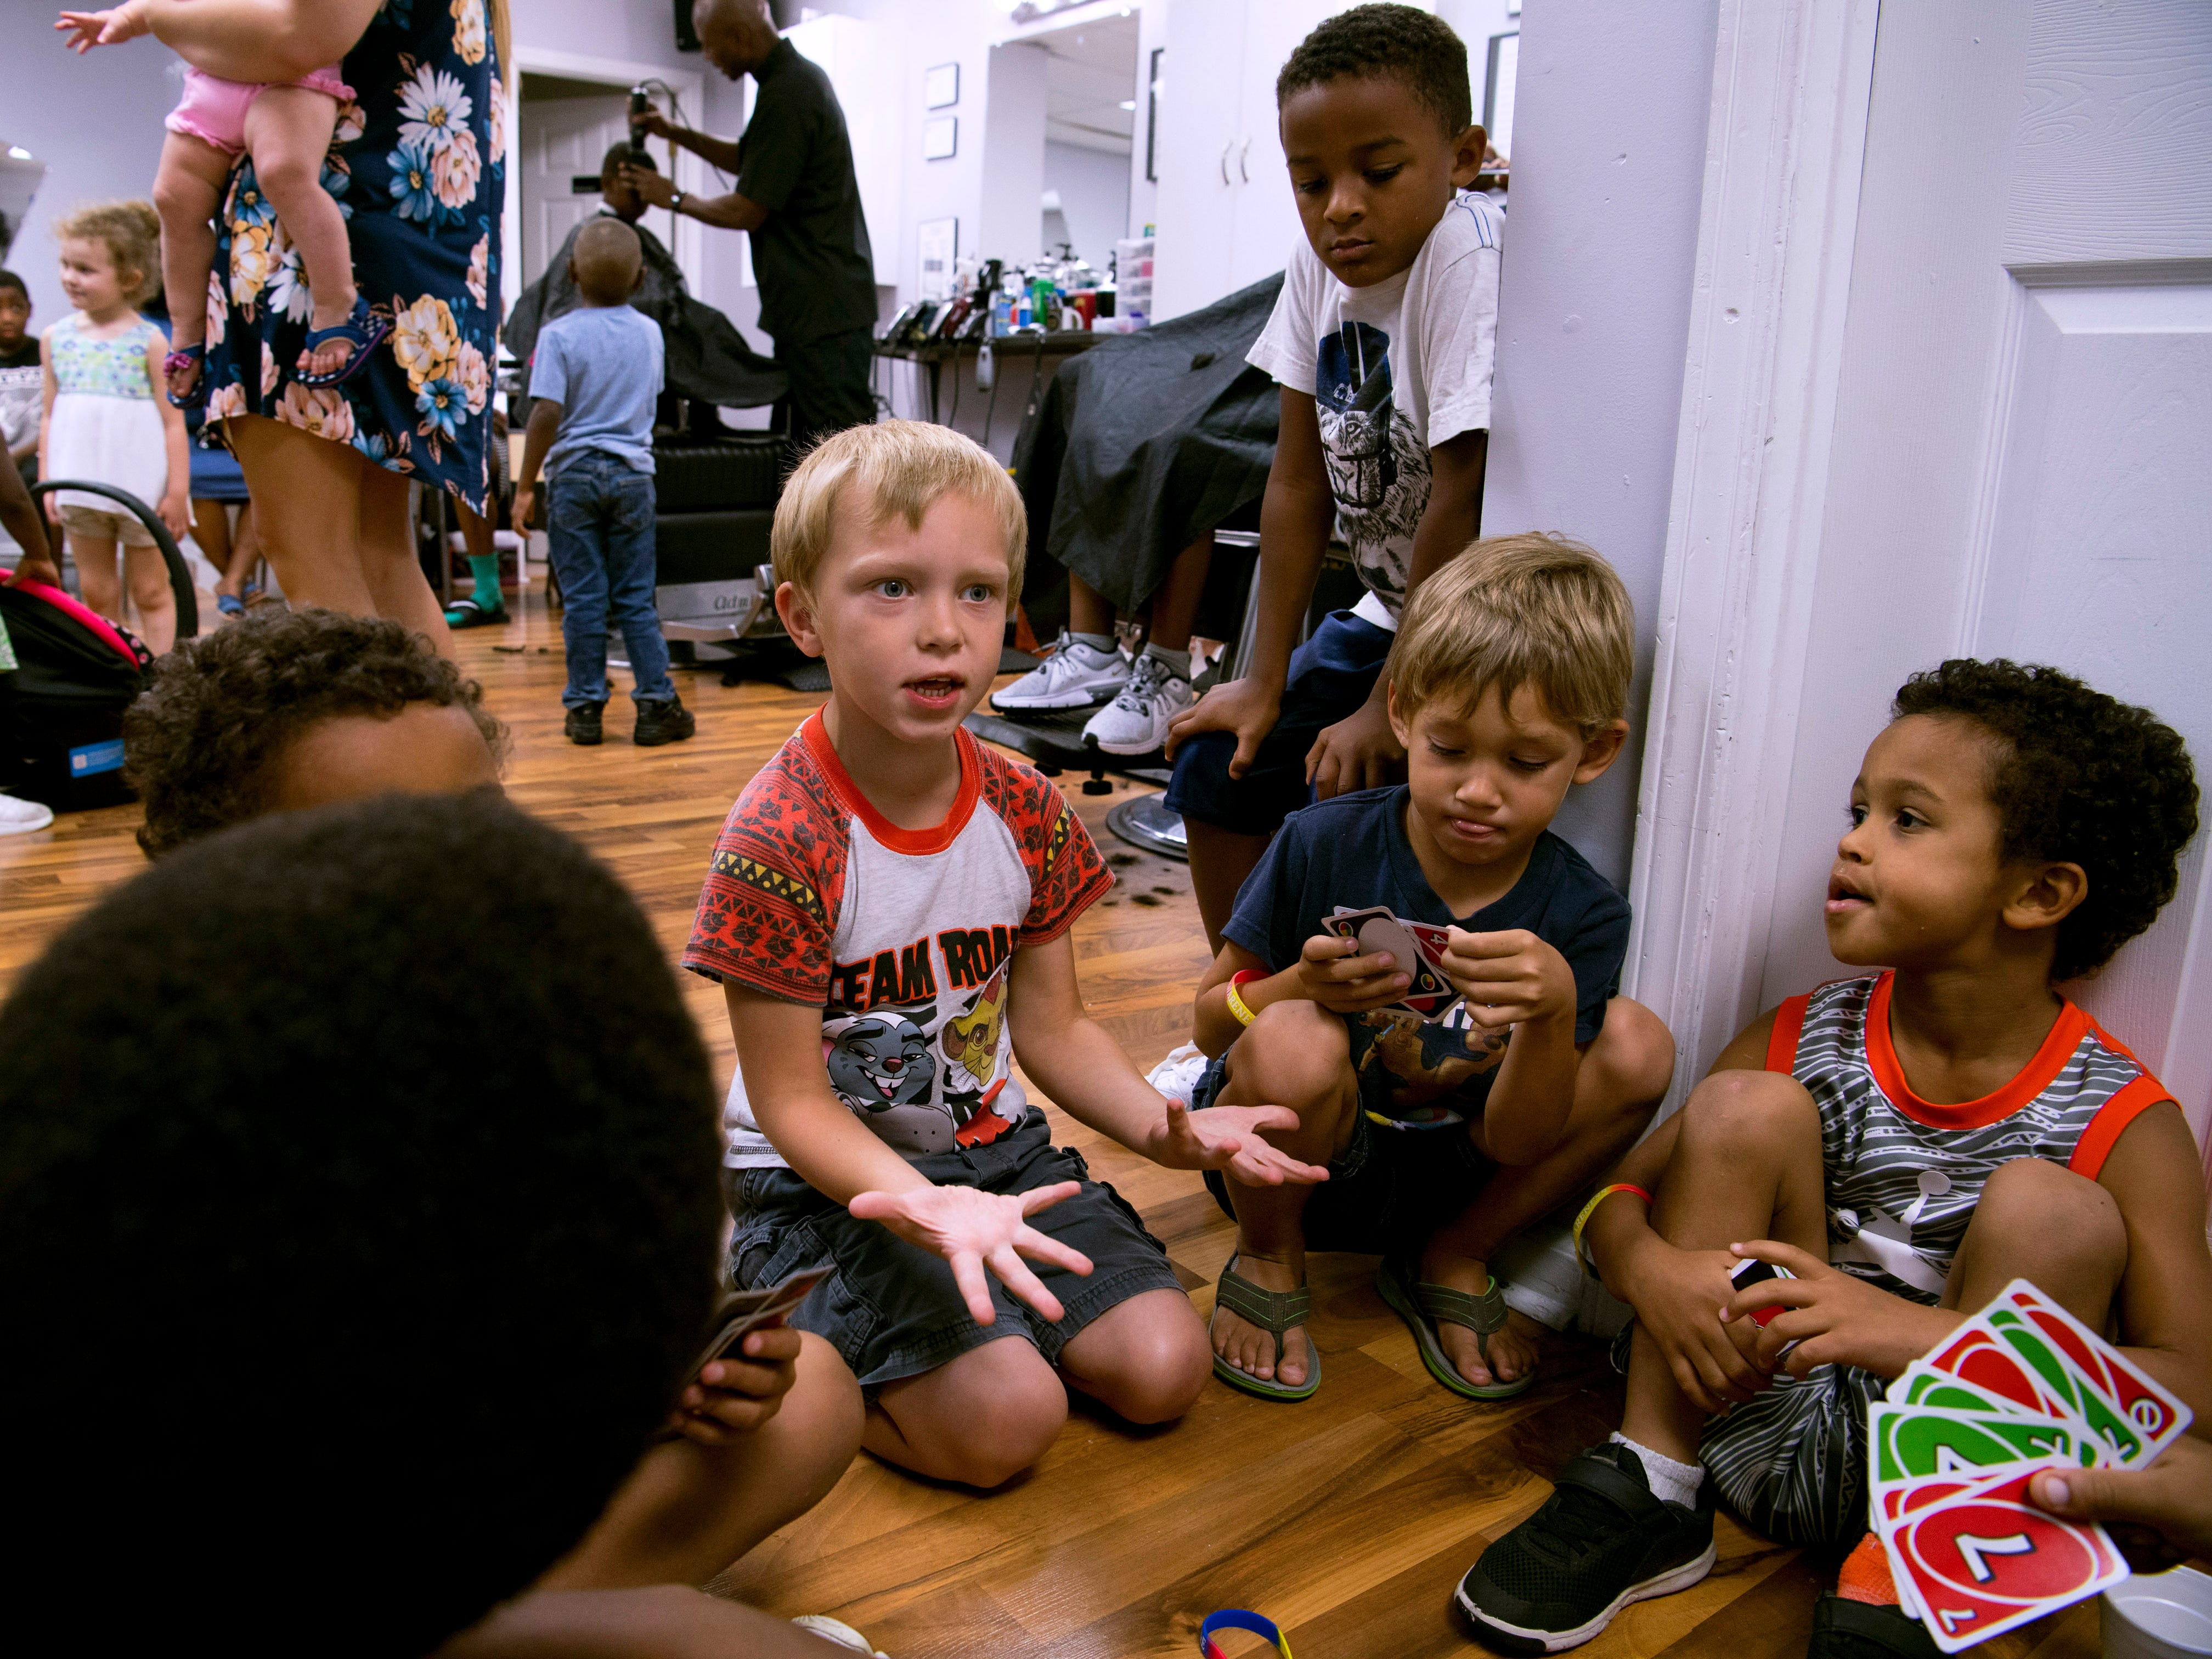 The rules for a pick-up Uno card game were seemingly made up on the fly at Jerald's Barbershop as kids waited their turns for back-to-school haircuts Monday afternoon.